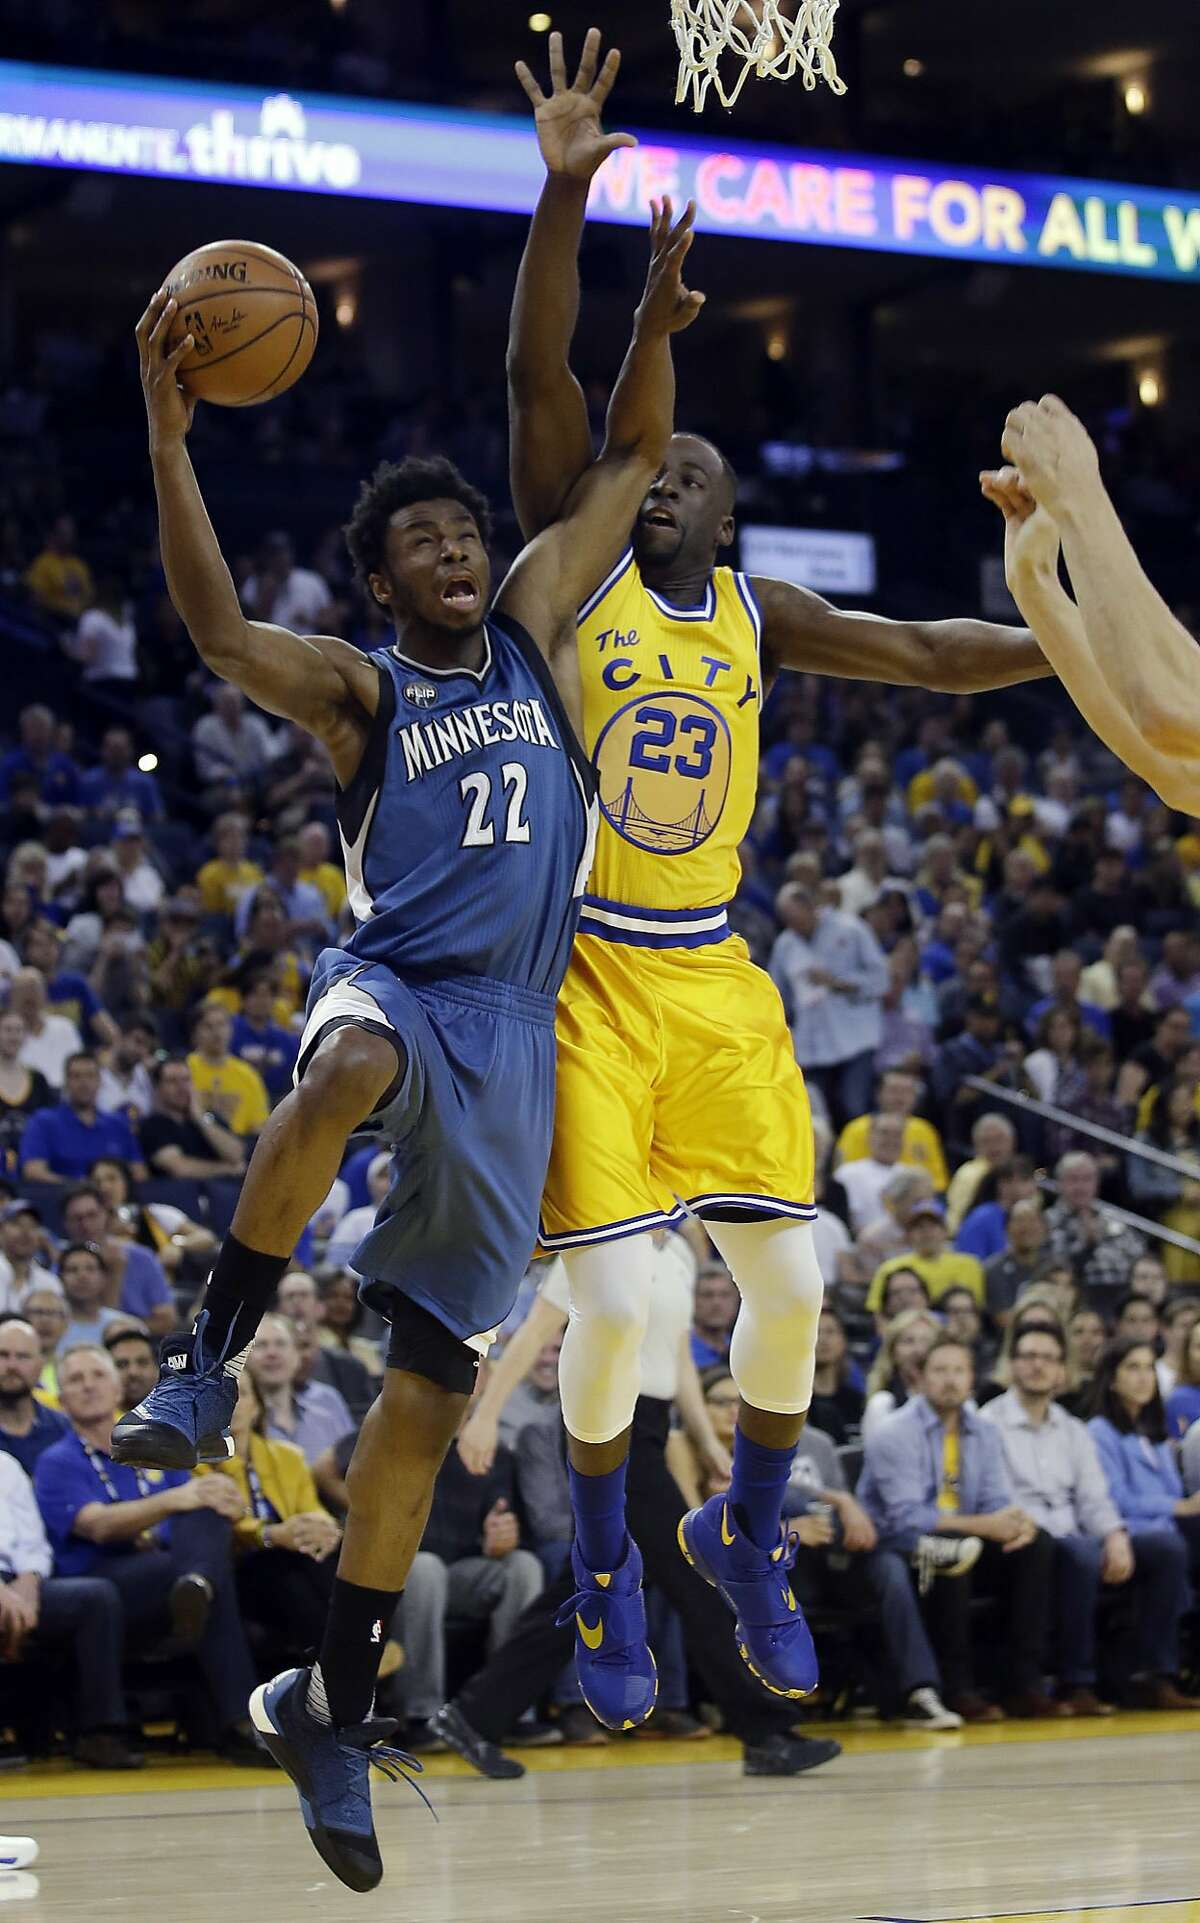 Minnesota Timberwolves' Andrew Wiggins (22) drives to the basket as Golden State Warriors' Draymond Green (23) defends during the first half of an NBA basketball game Tuesday, April 5, 2016, in Oakland, Calif.